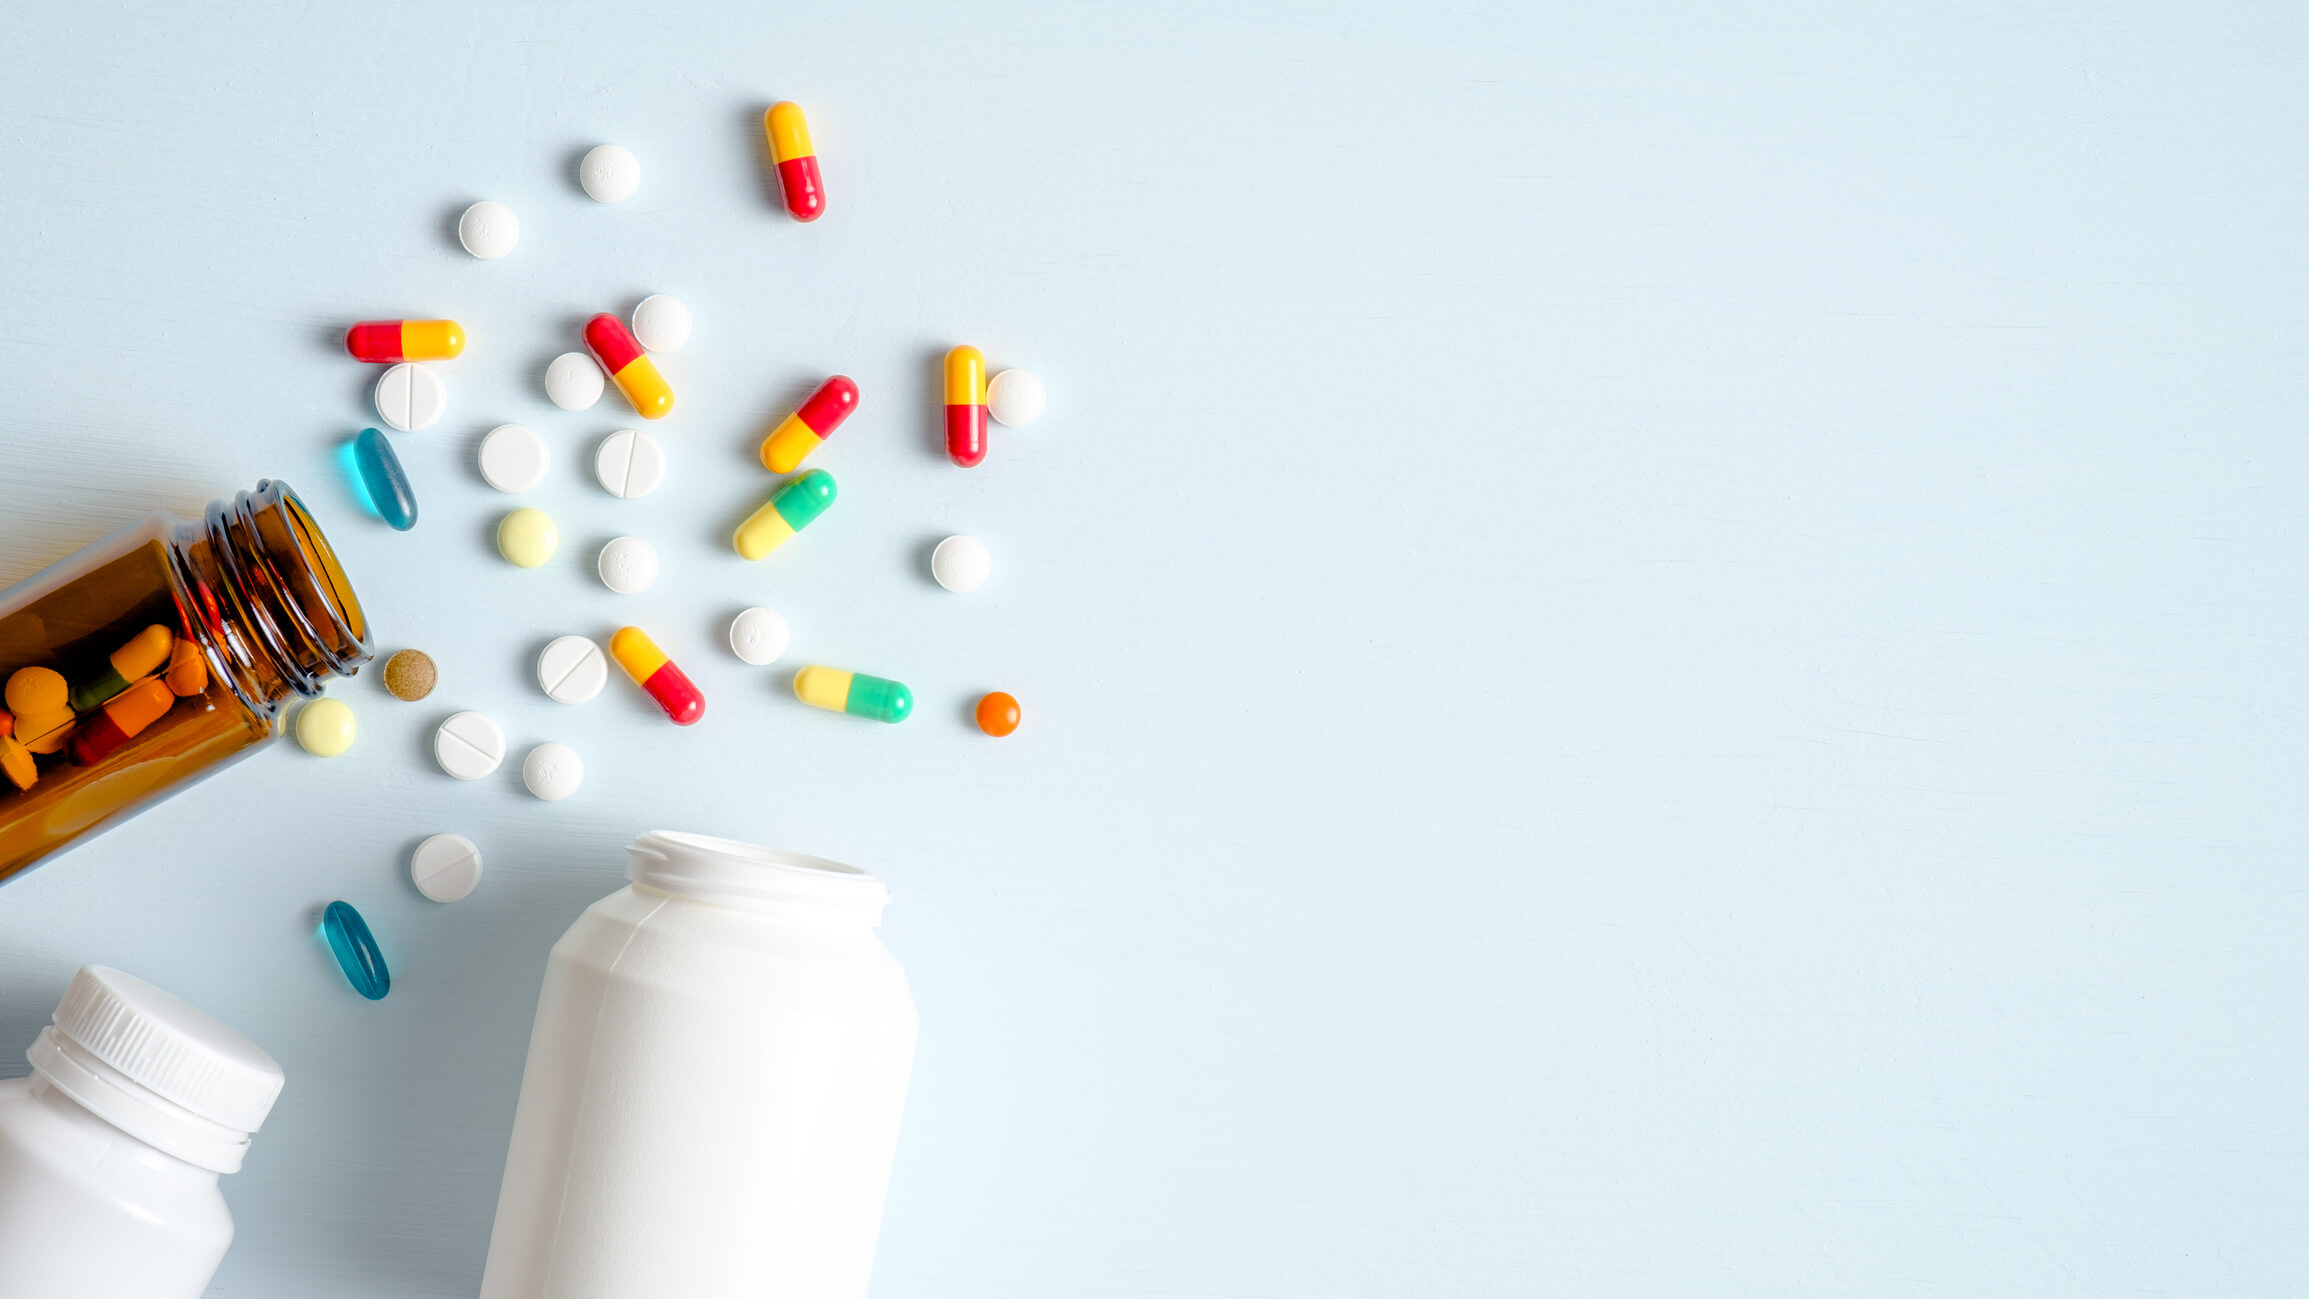 Image of previous post - 5 WAYS TO SIMPLIFY MEDICATION MANAGEMENT